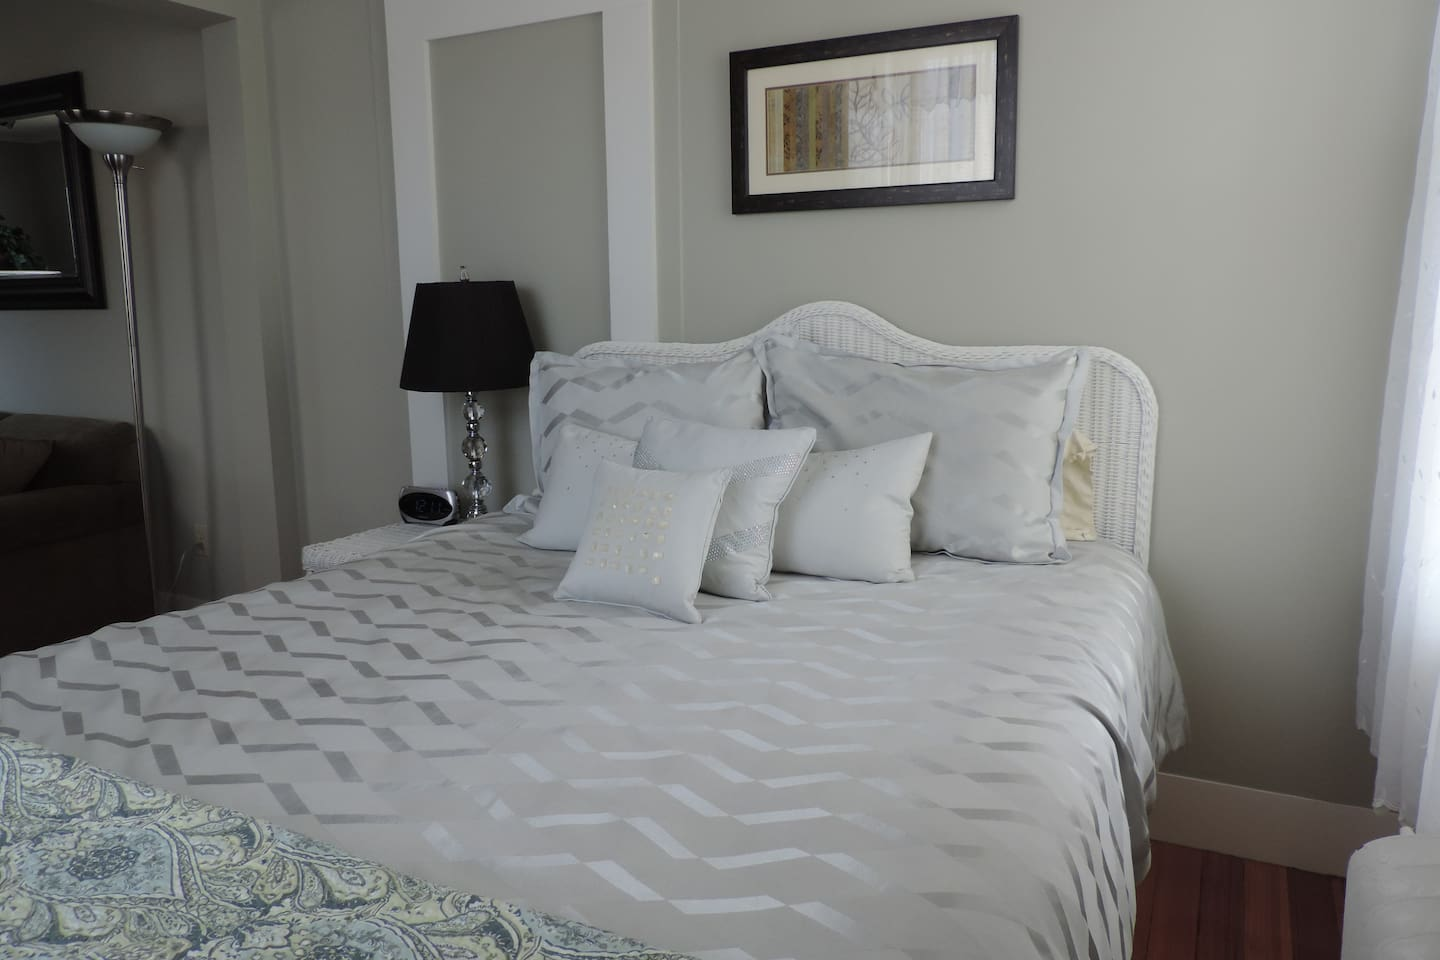 The Gorham has a queen size bed and is located on the front of the building!